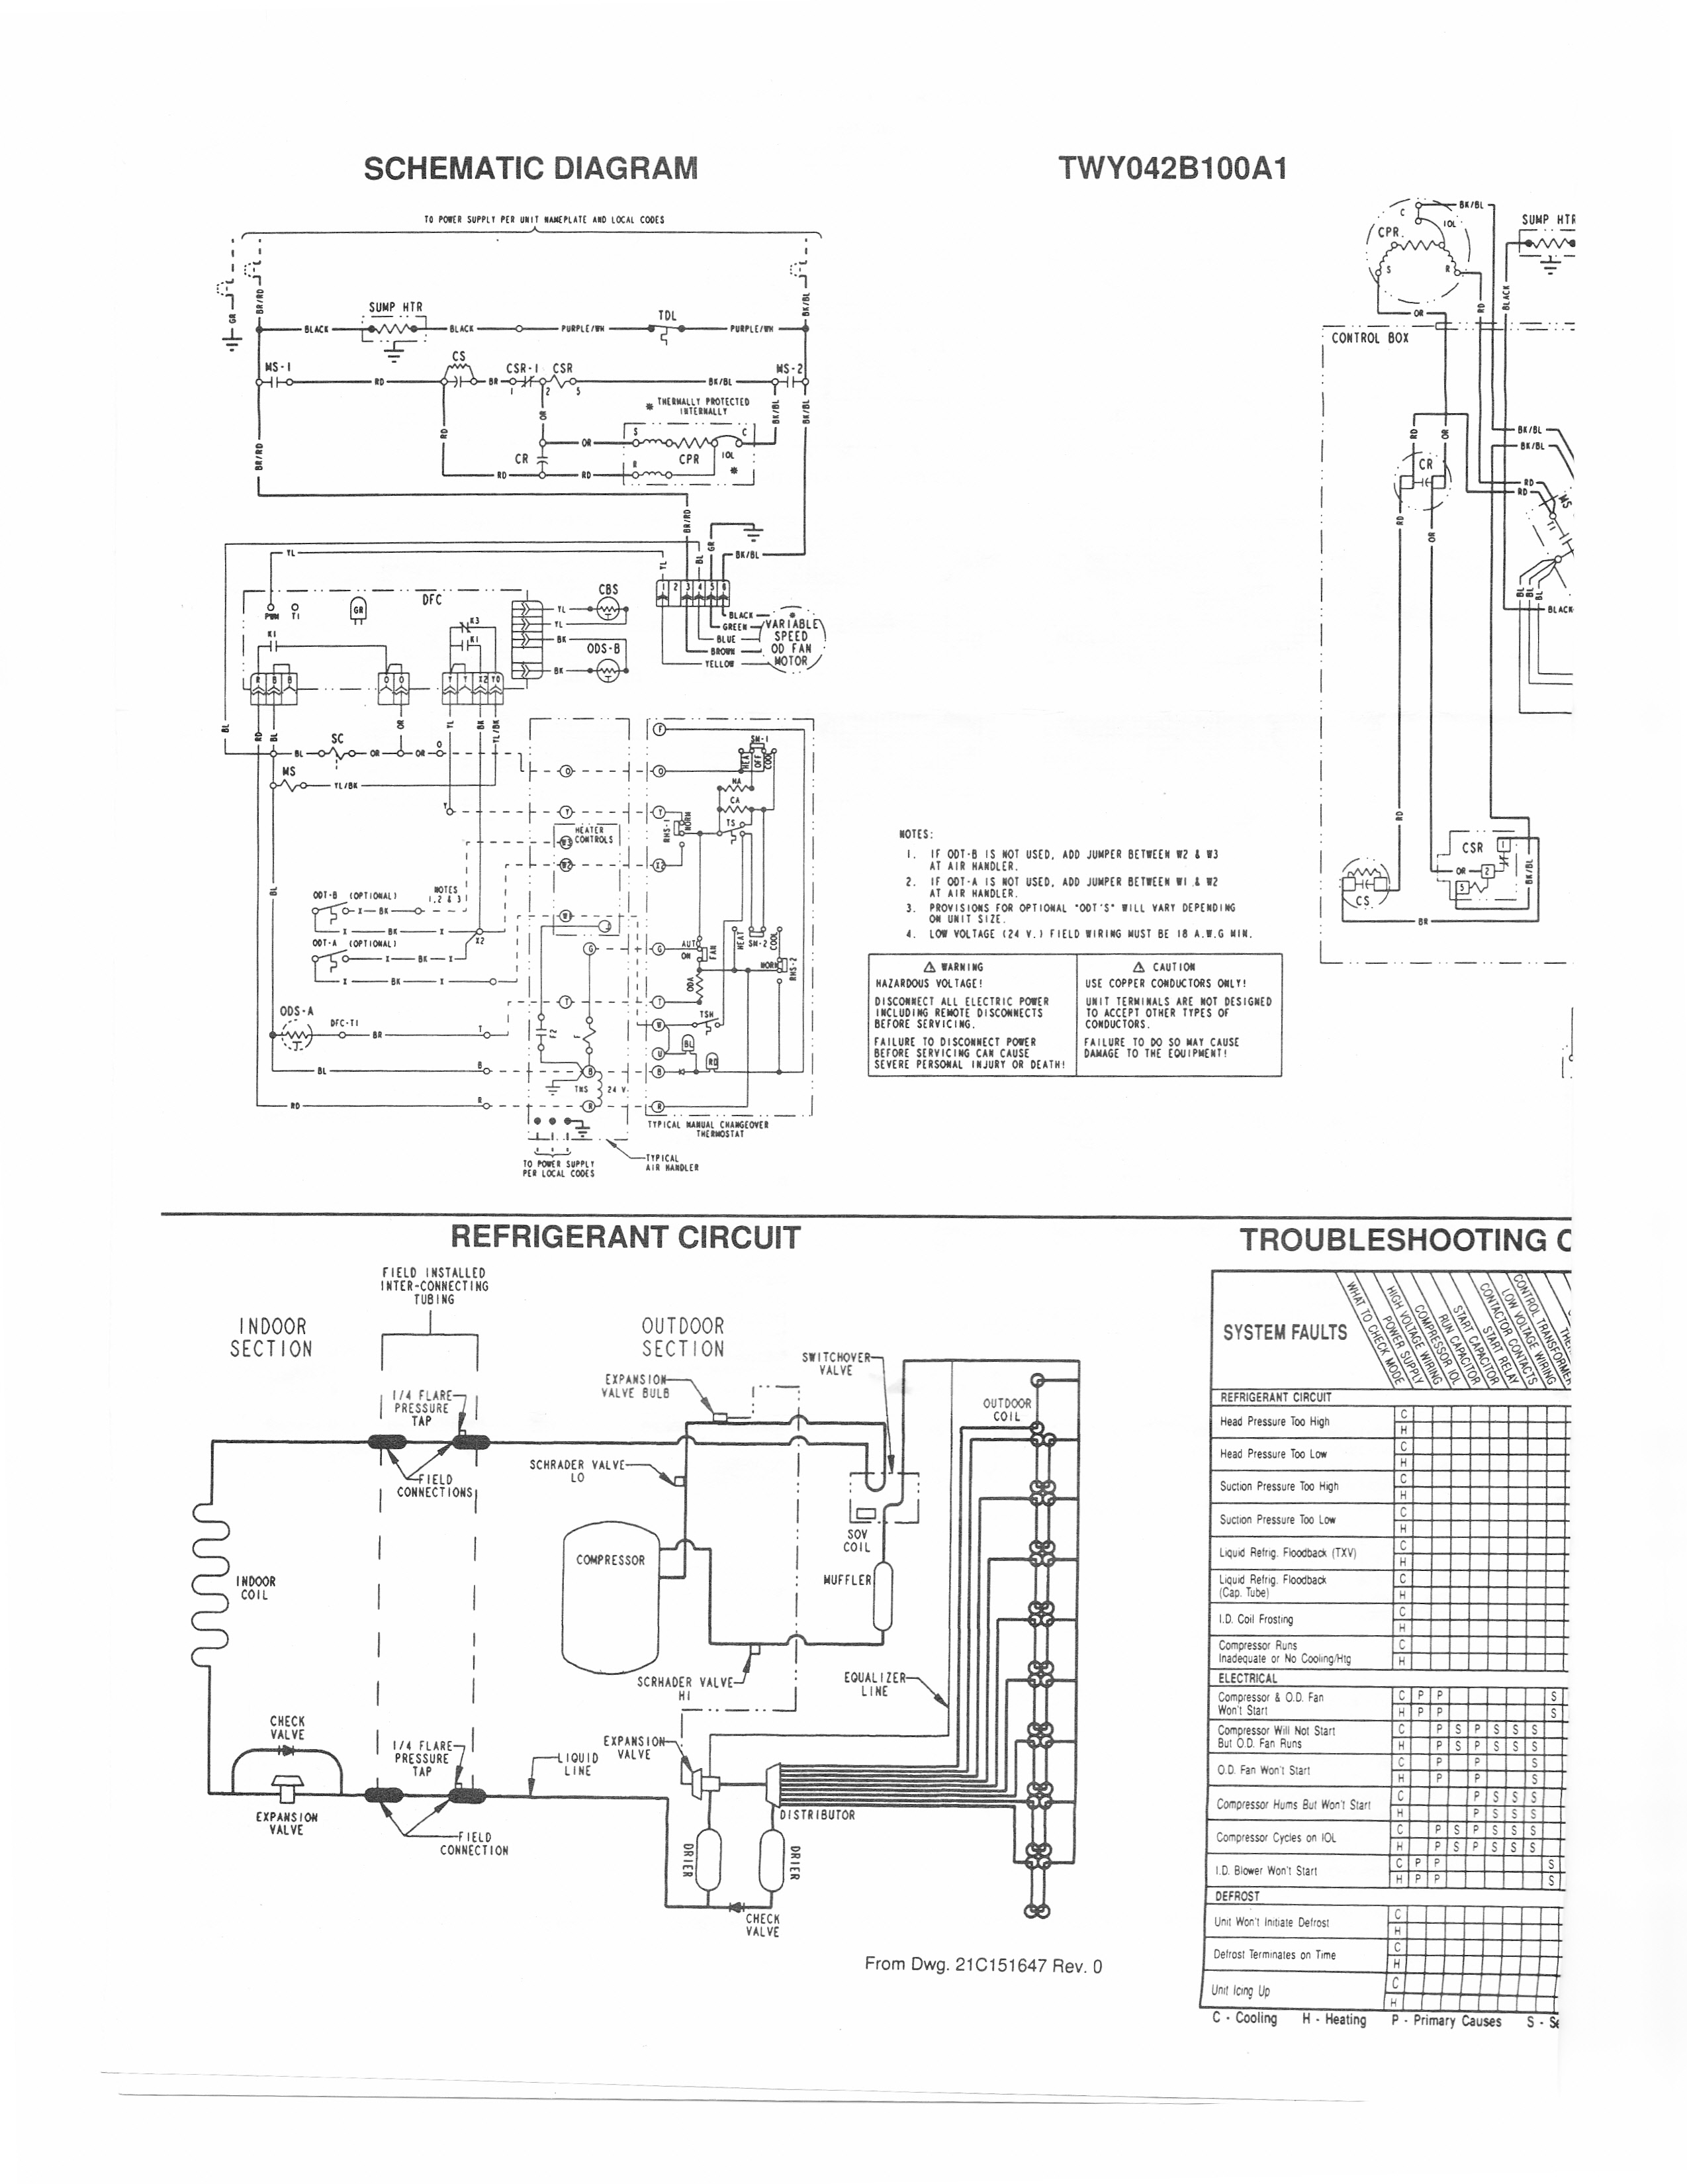 trane heat pump wiring diagram | free wiring diagram trane heat pump wire diagram